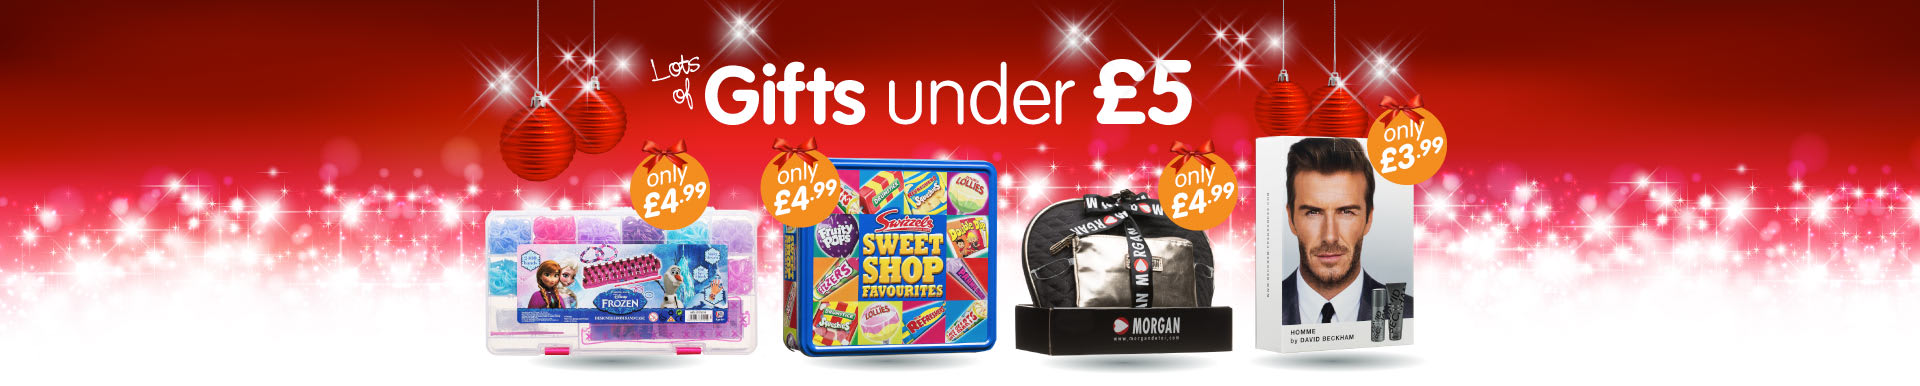 Lots of Christmas Gifts under £5 at B&M Stores.